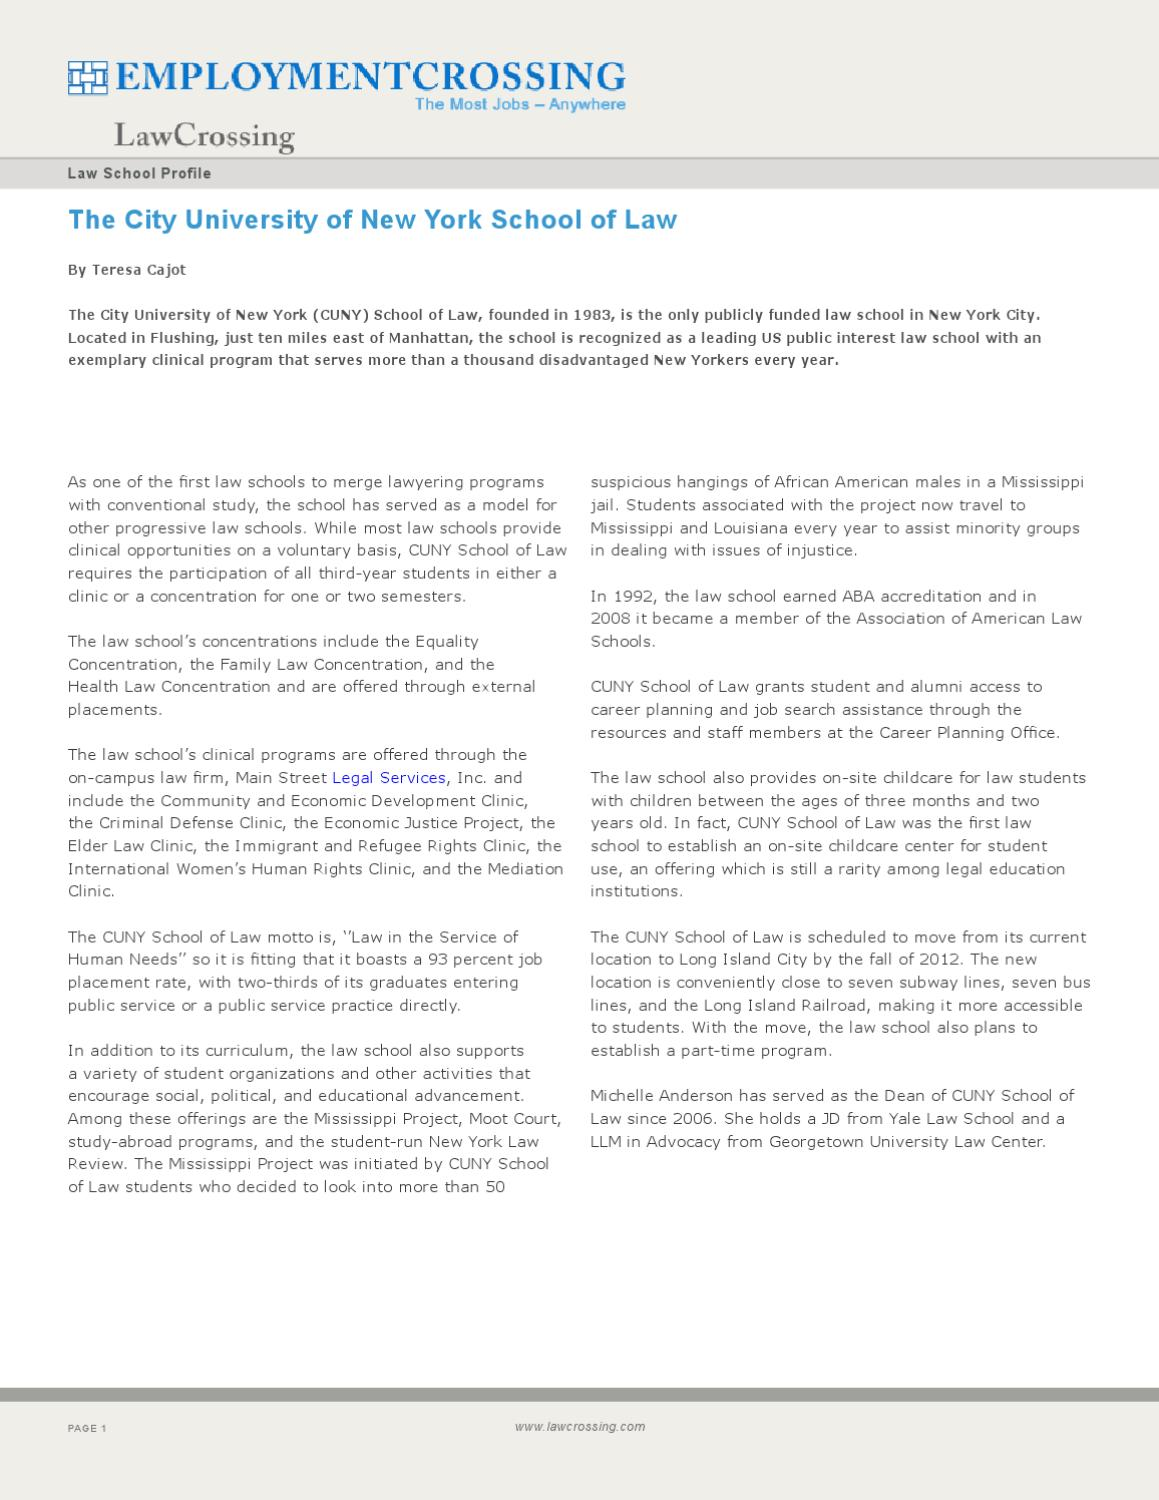 The City University of New York School of Law by LawCrossing